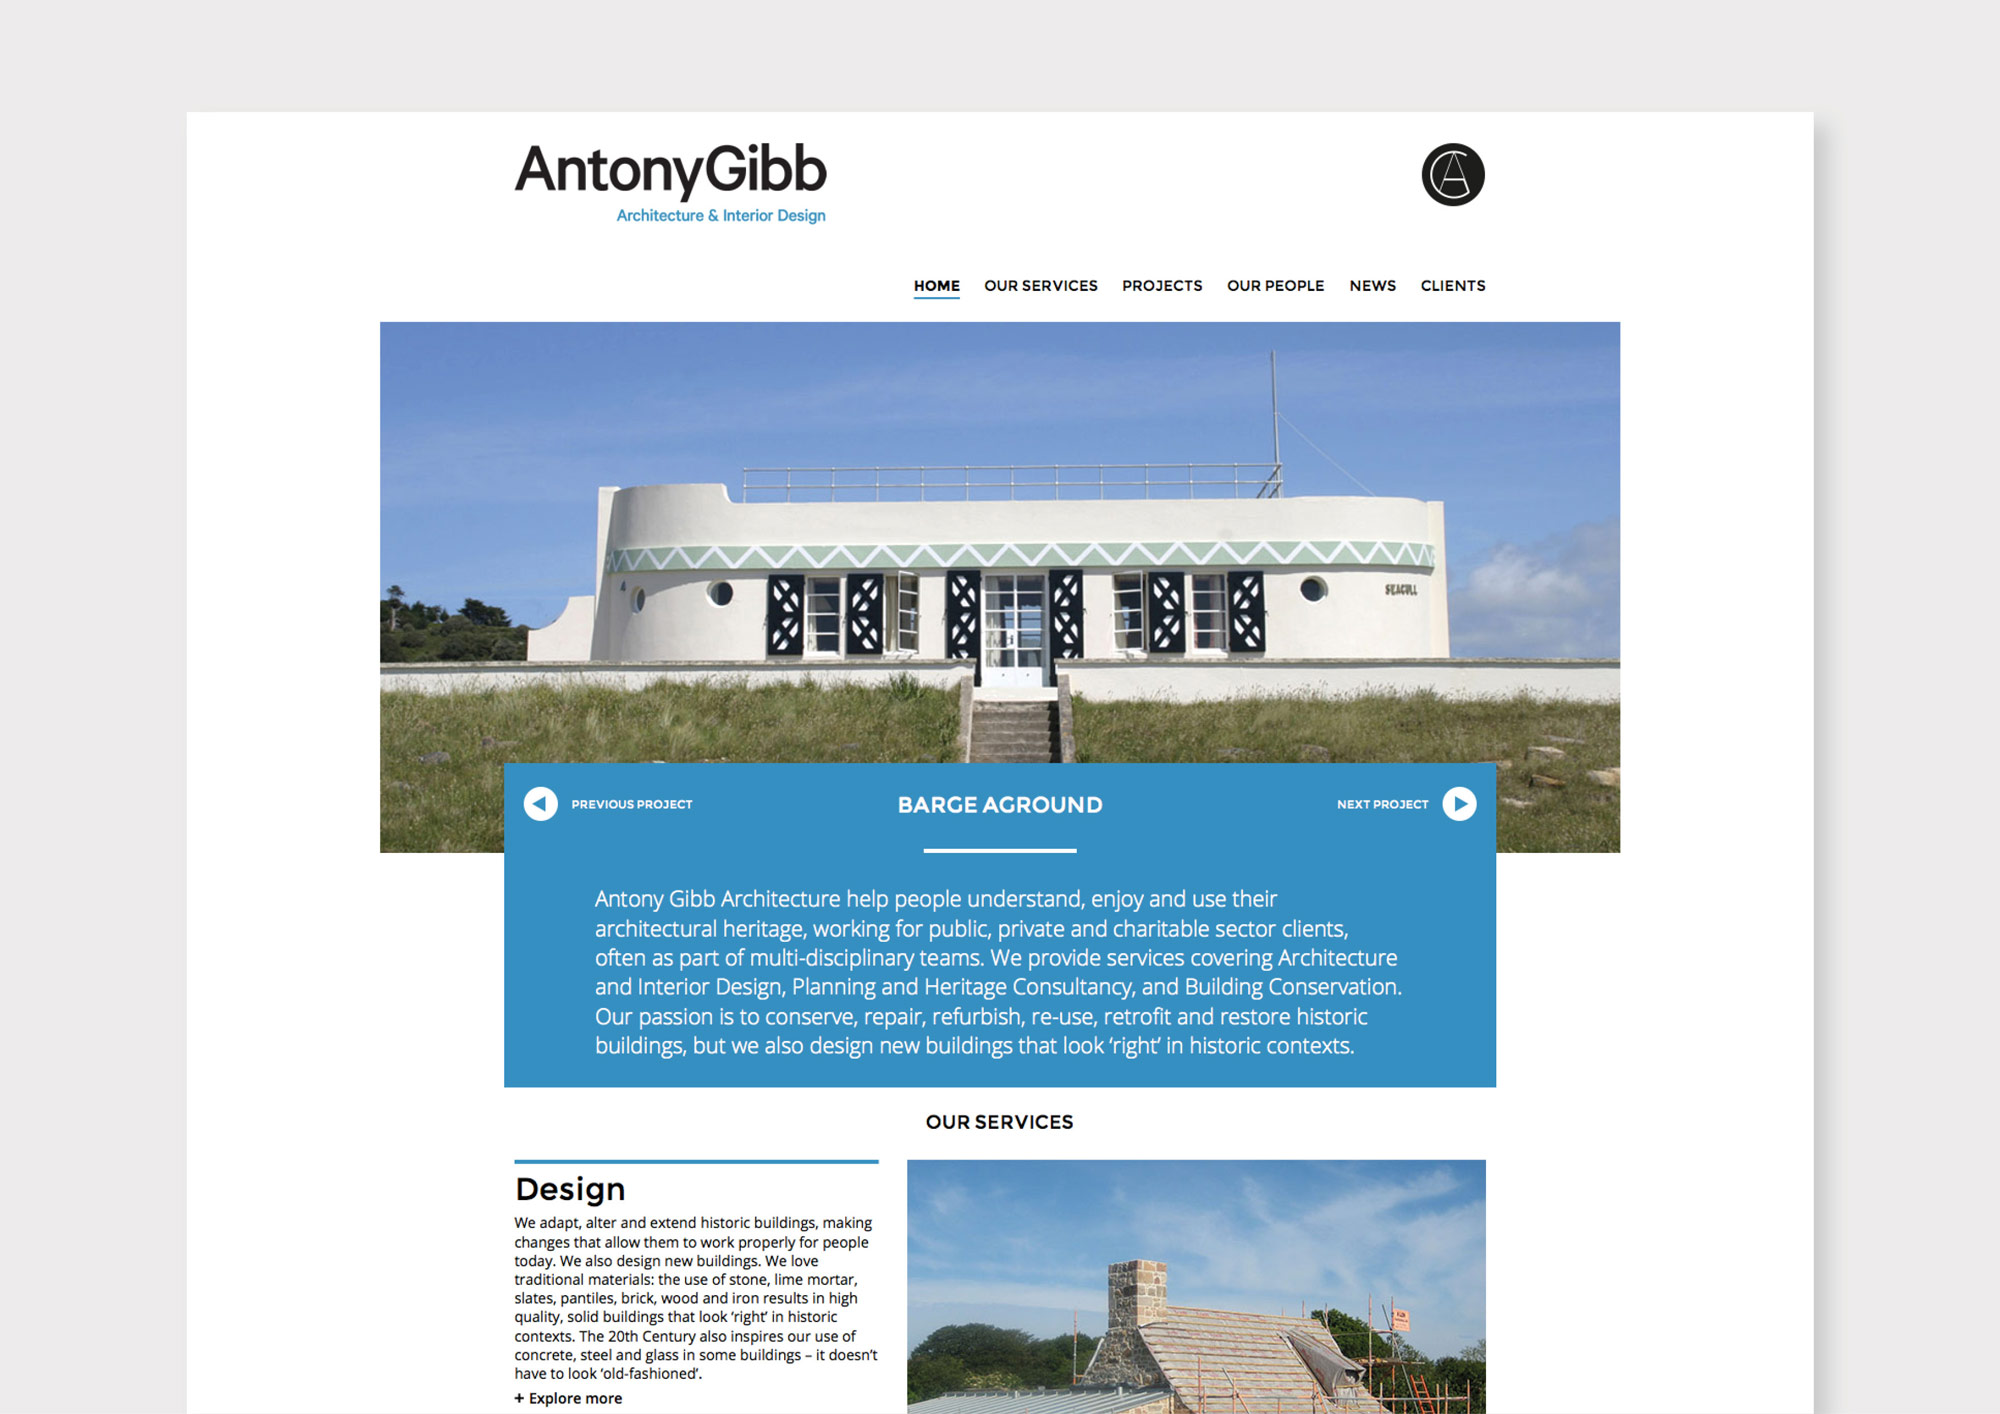 Antony Gibb website